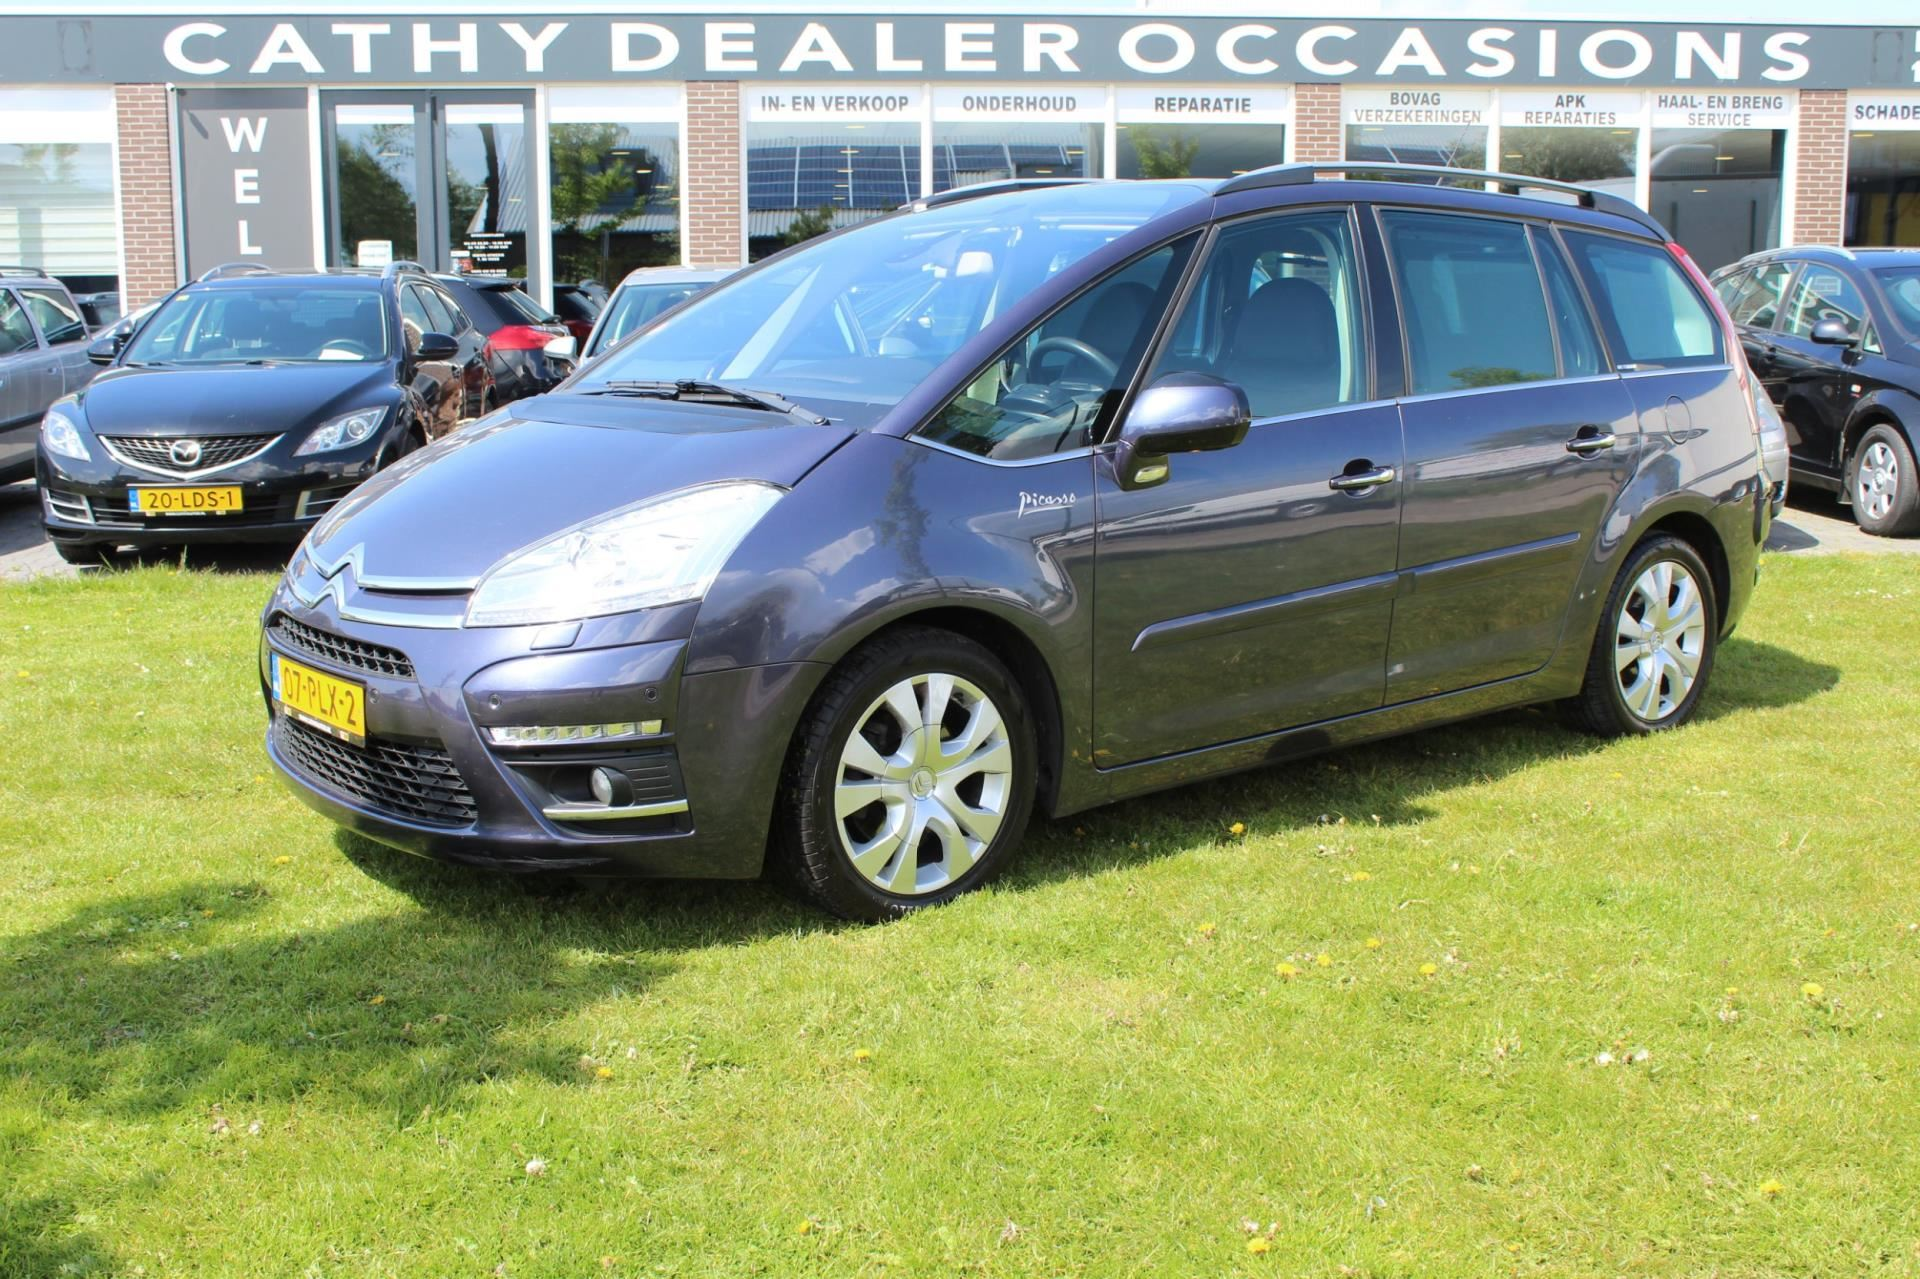 Citroen Grand C4 Picasso occasion - Cathy Dealer Occasions